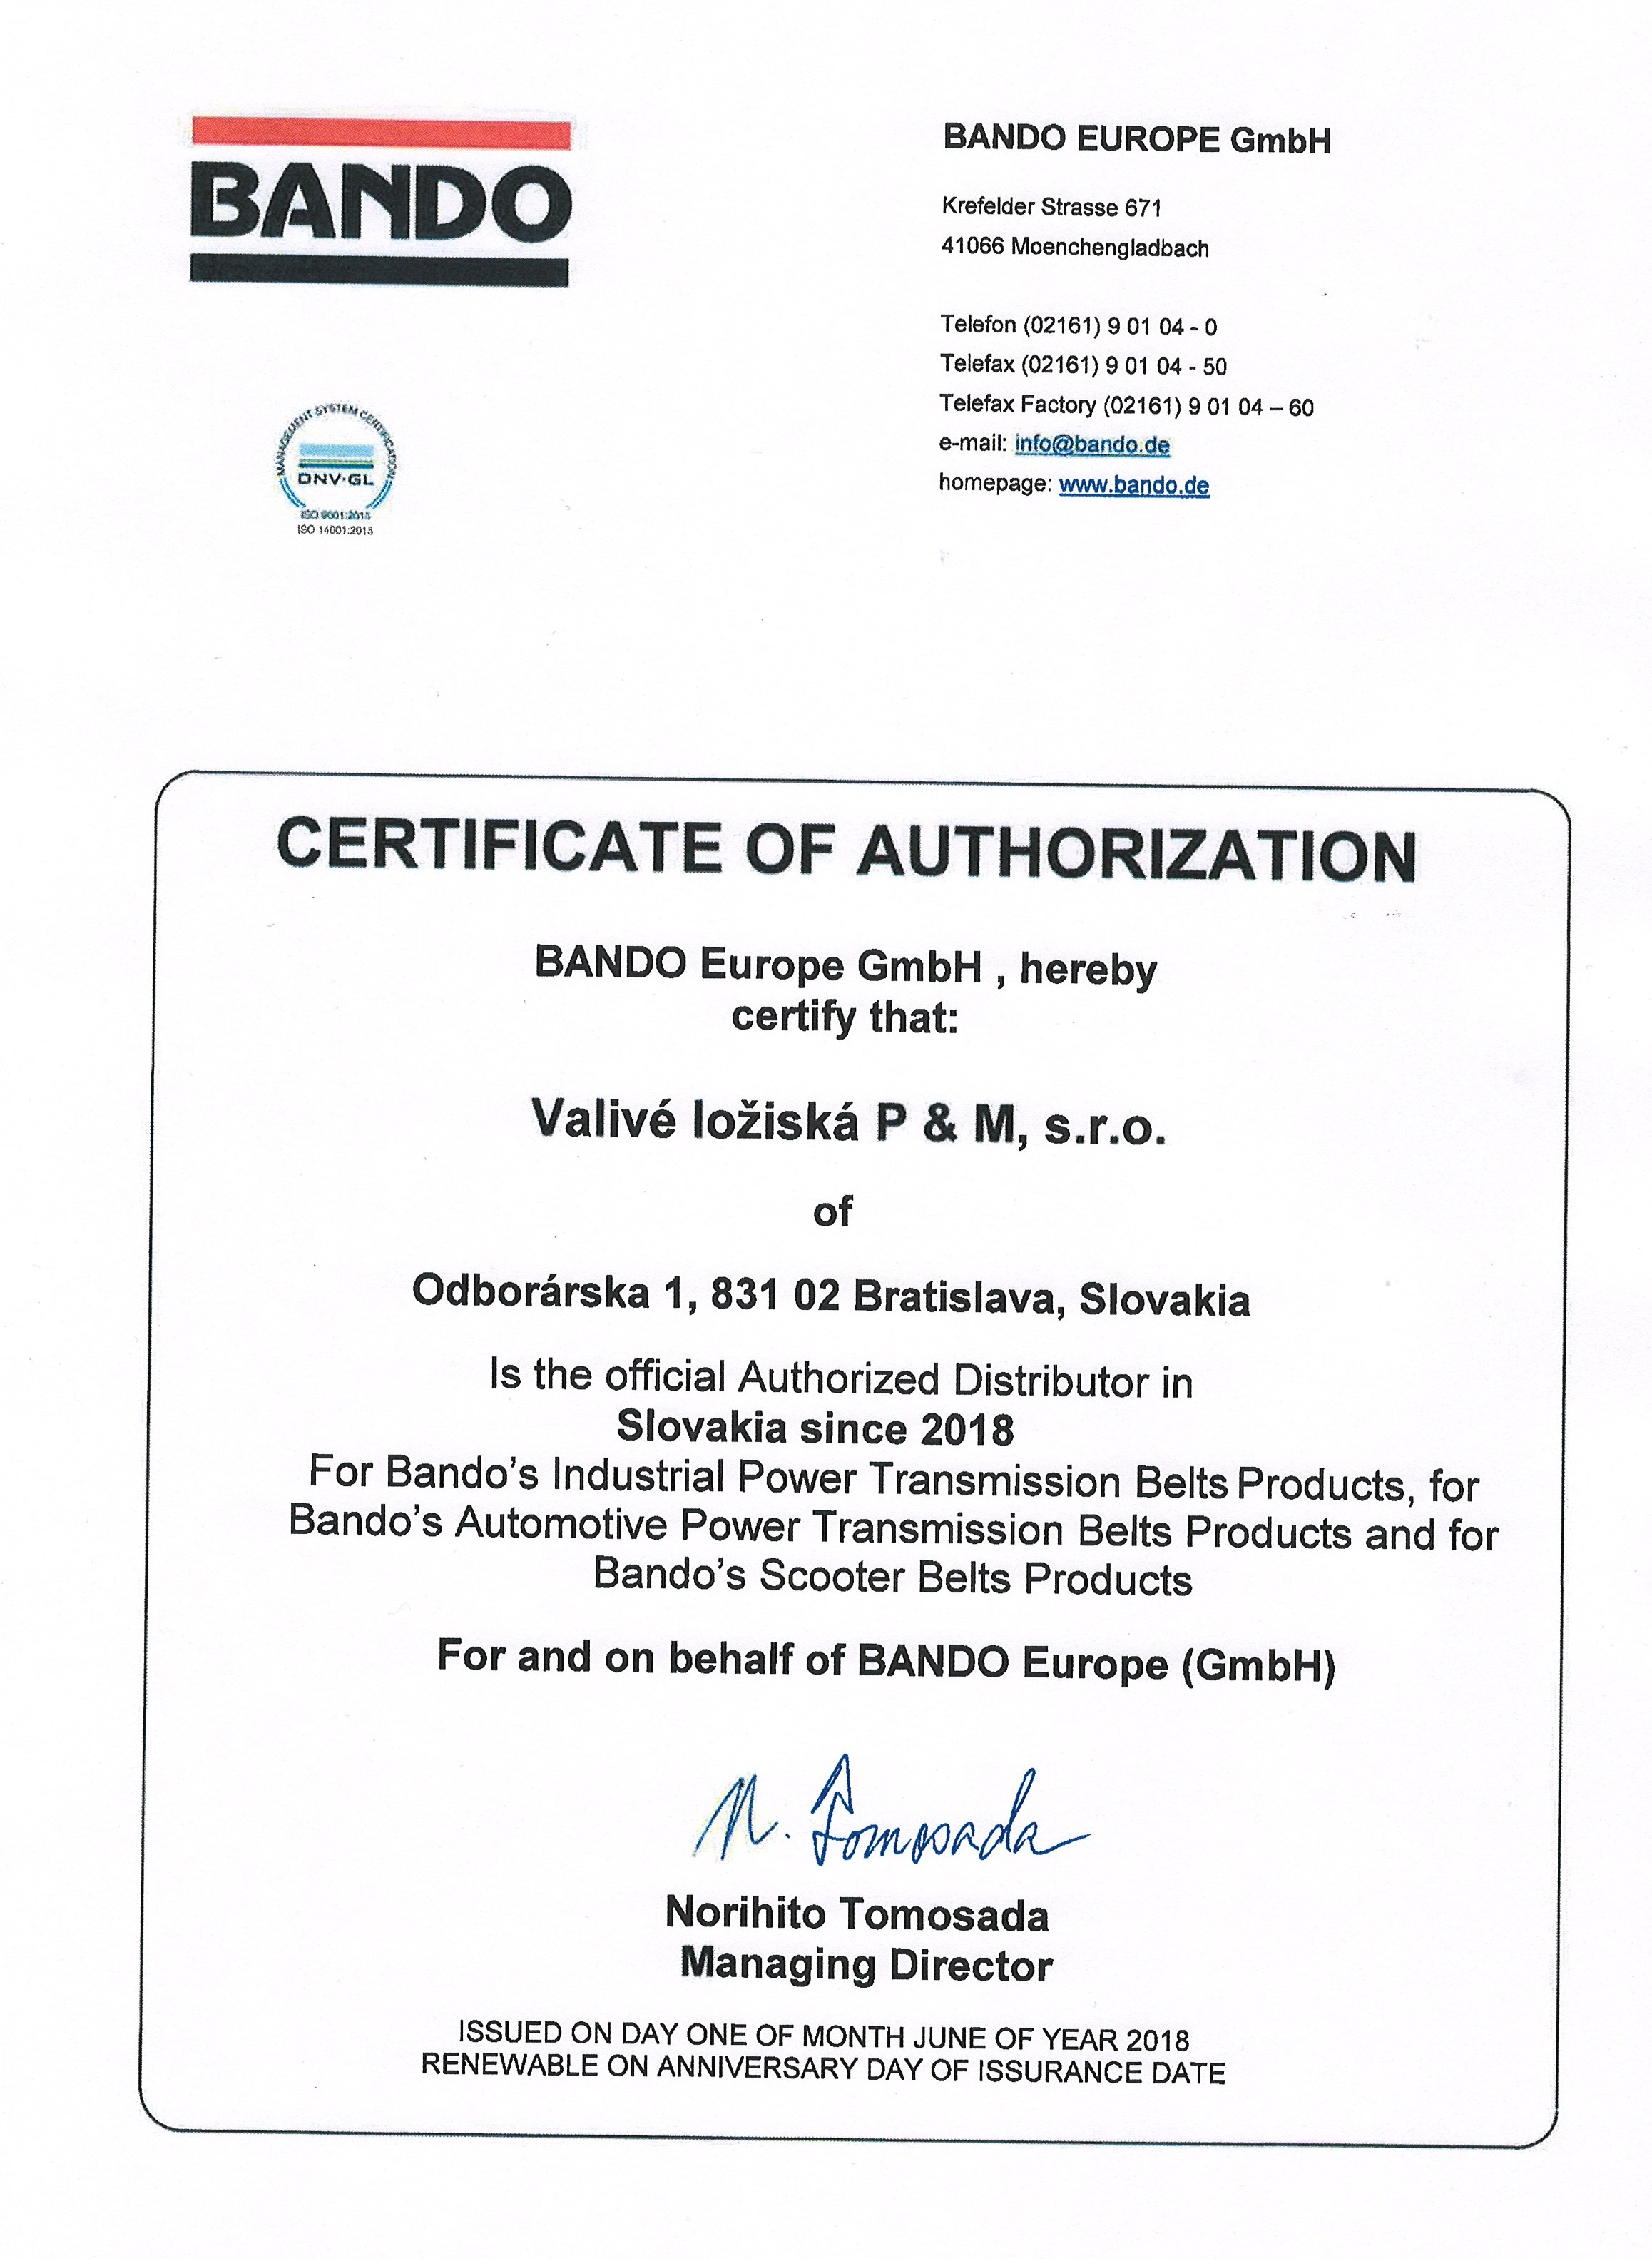 Certificate authorised distributor of BANDO